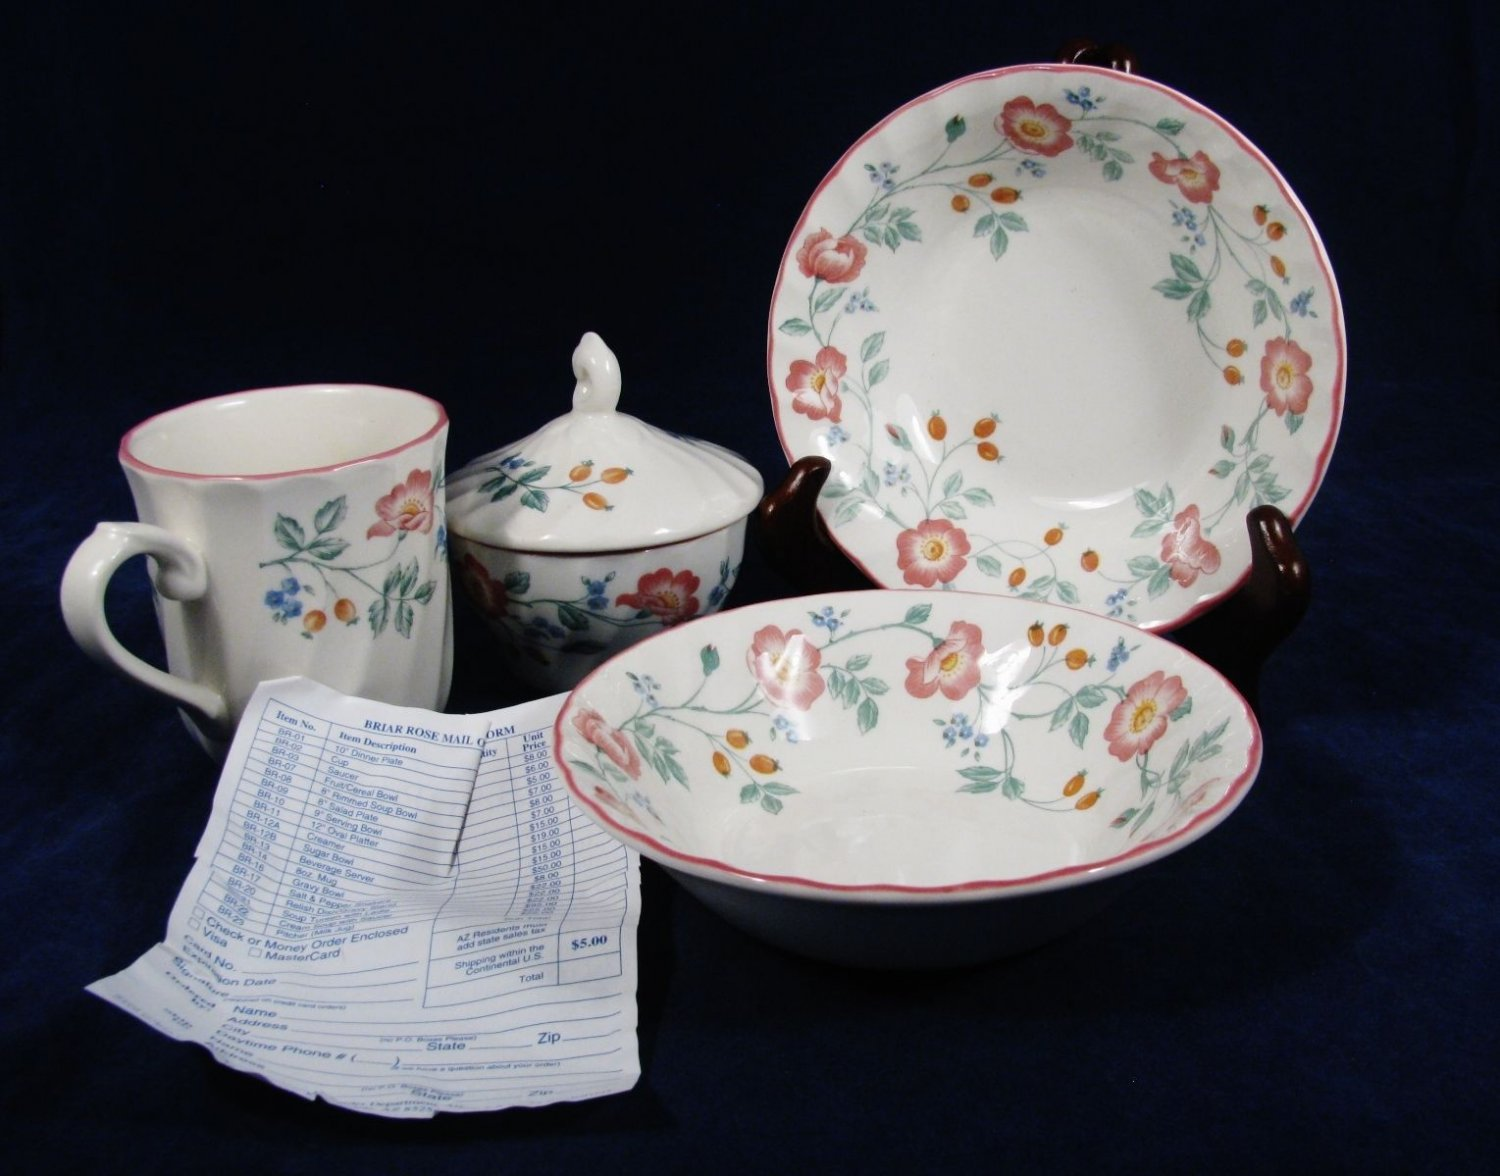 HERITAGE Mint  CHURCHILL Potters Set of Fruit Cereal Bowls Cup & Creamer England Fast Free Ship